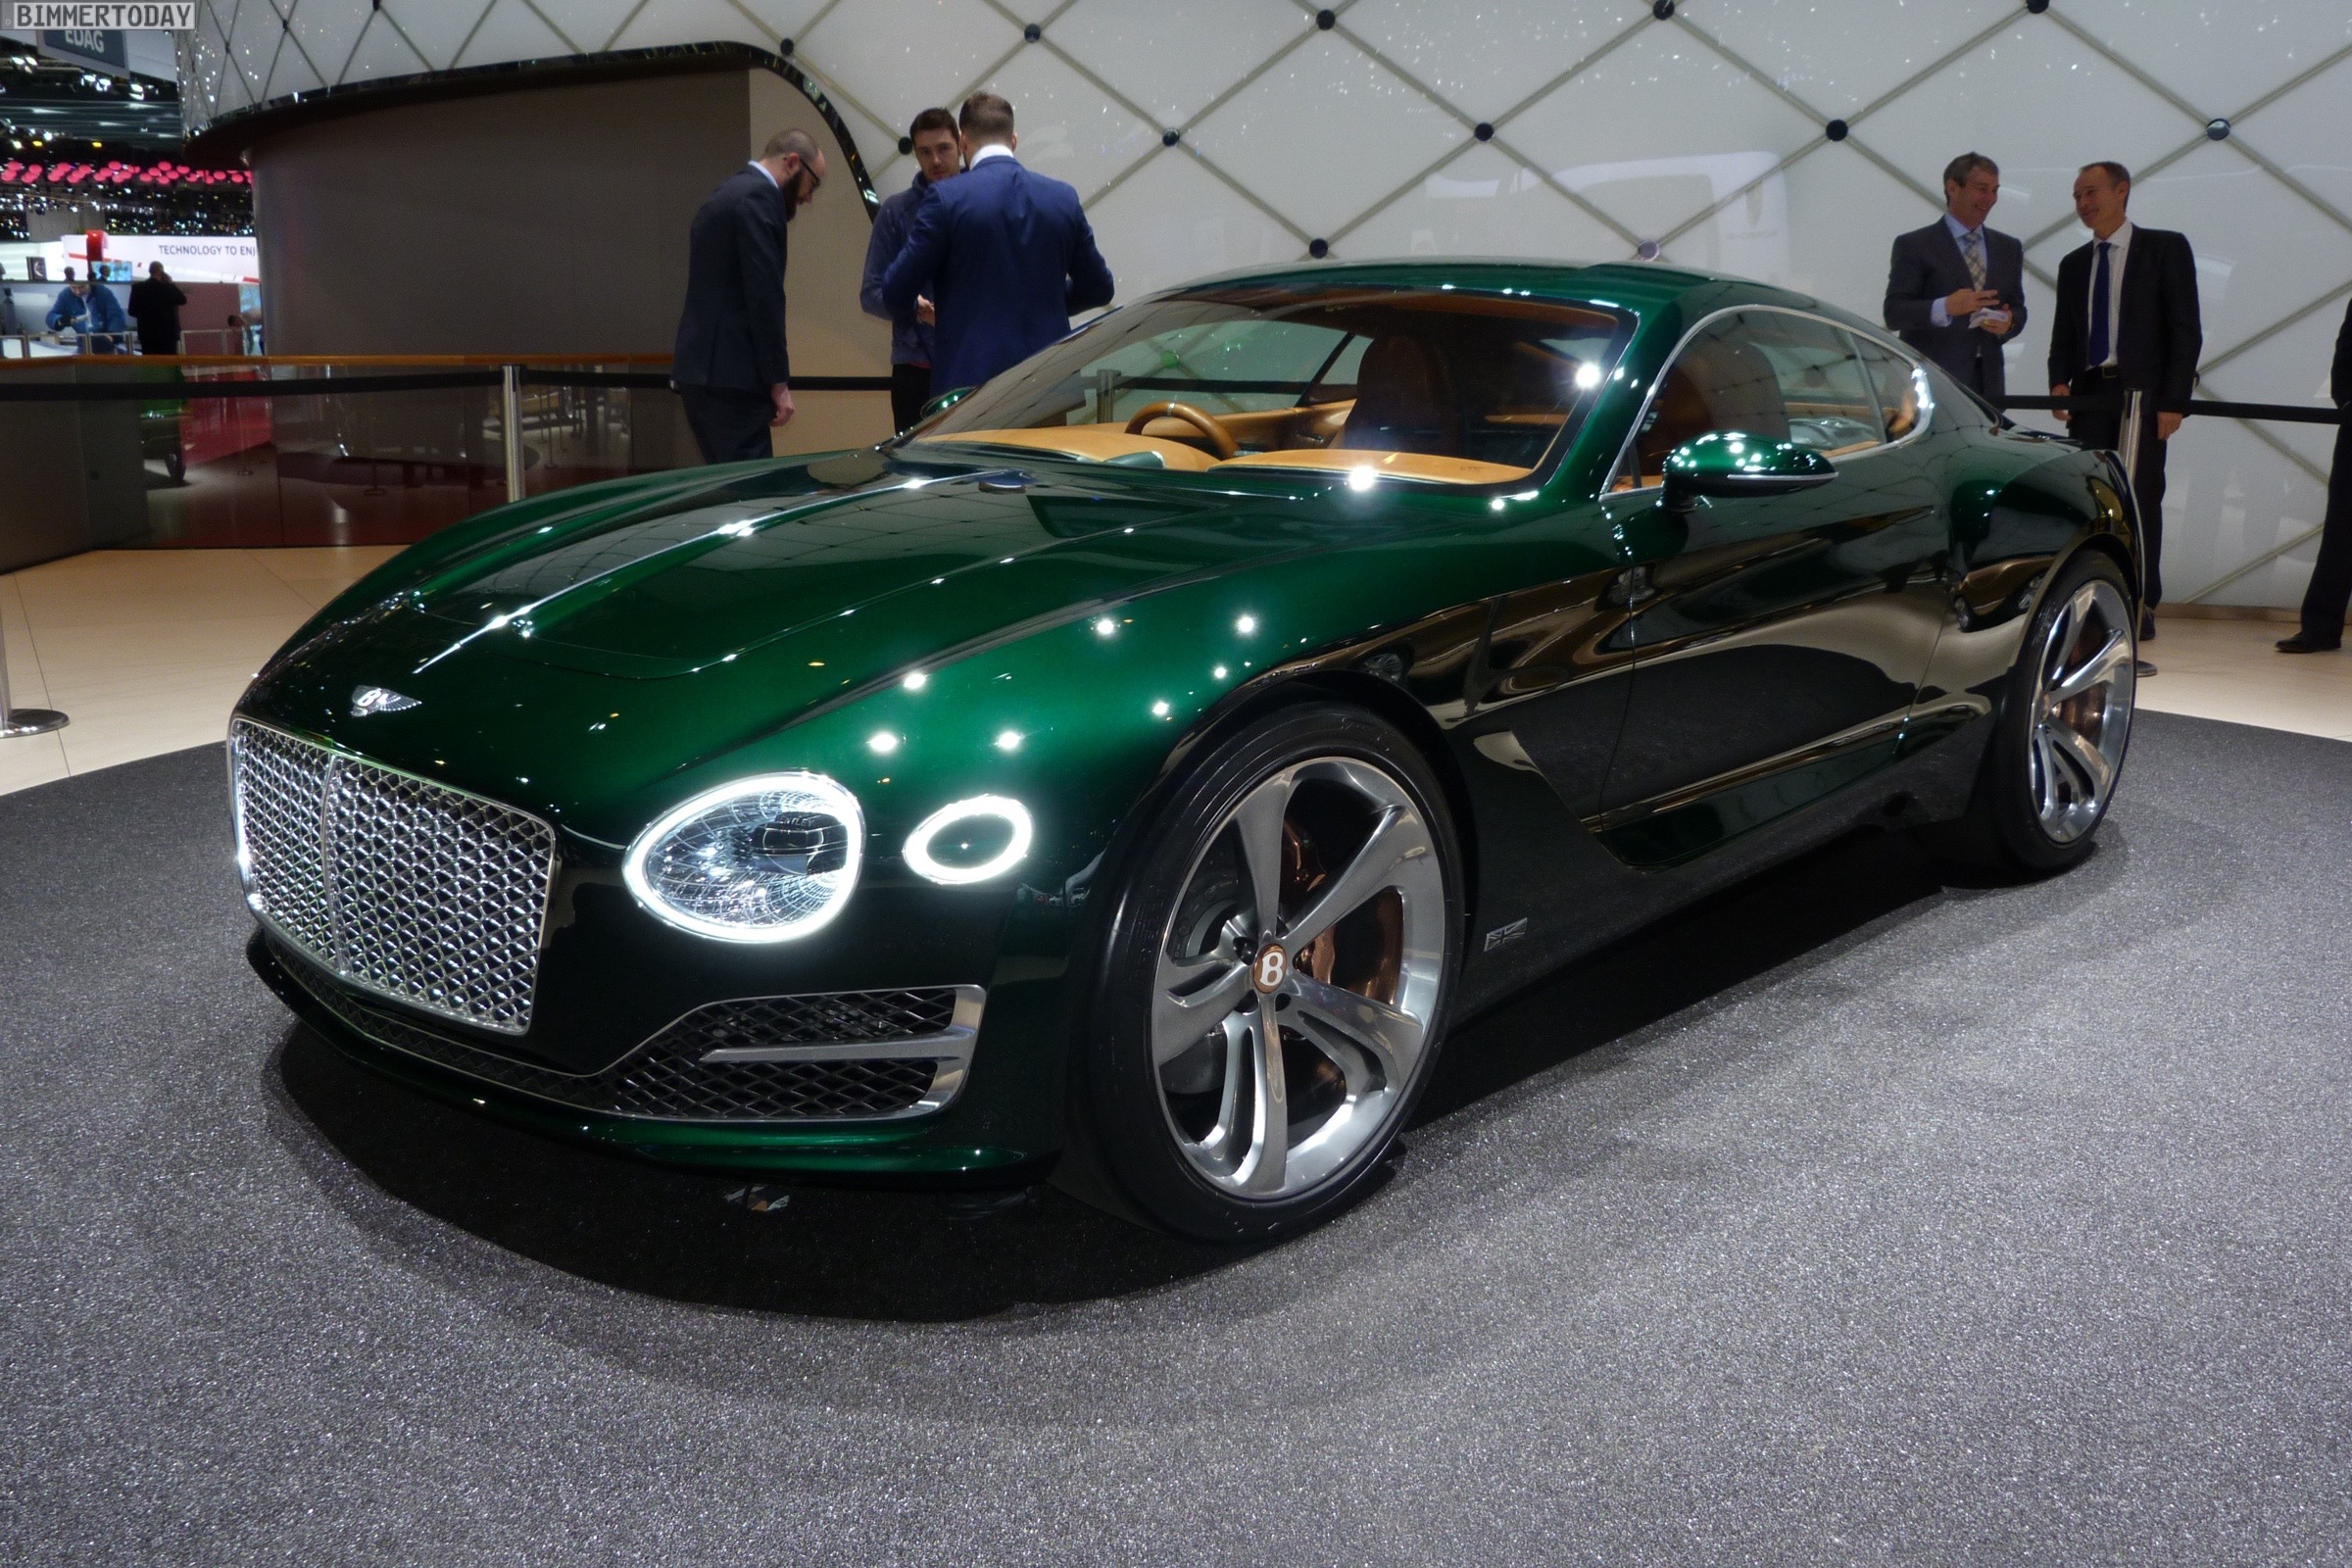 2015 Bentley EXP 10 Speed 6 Concept photo - 1